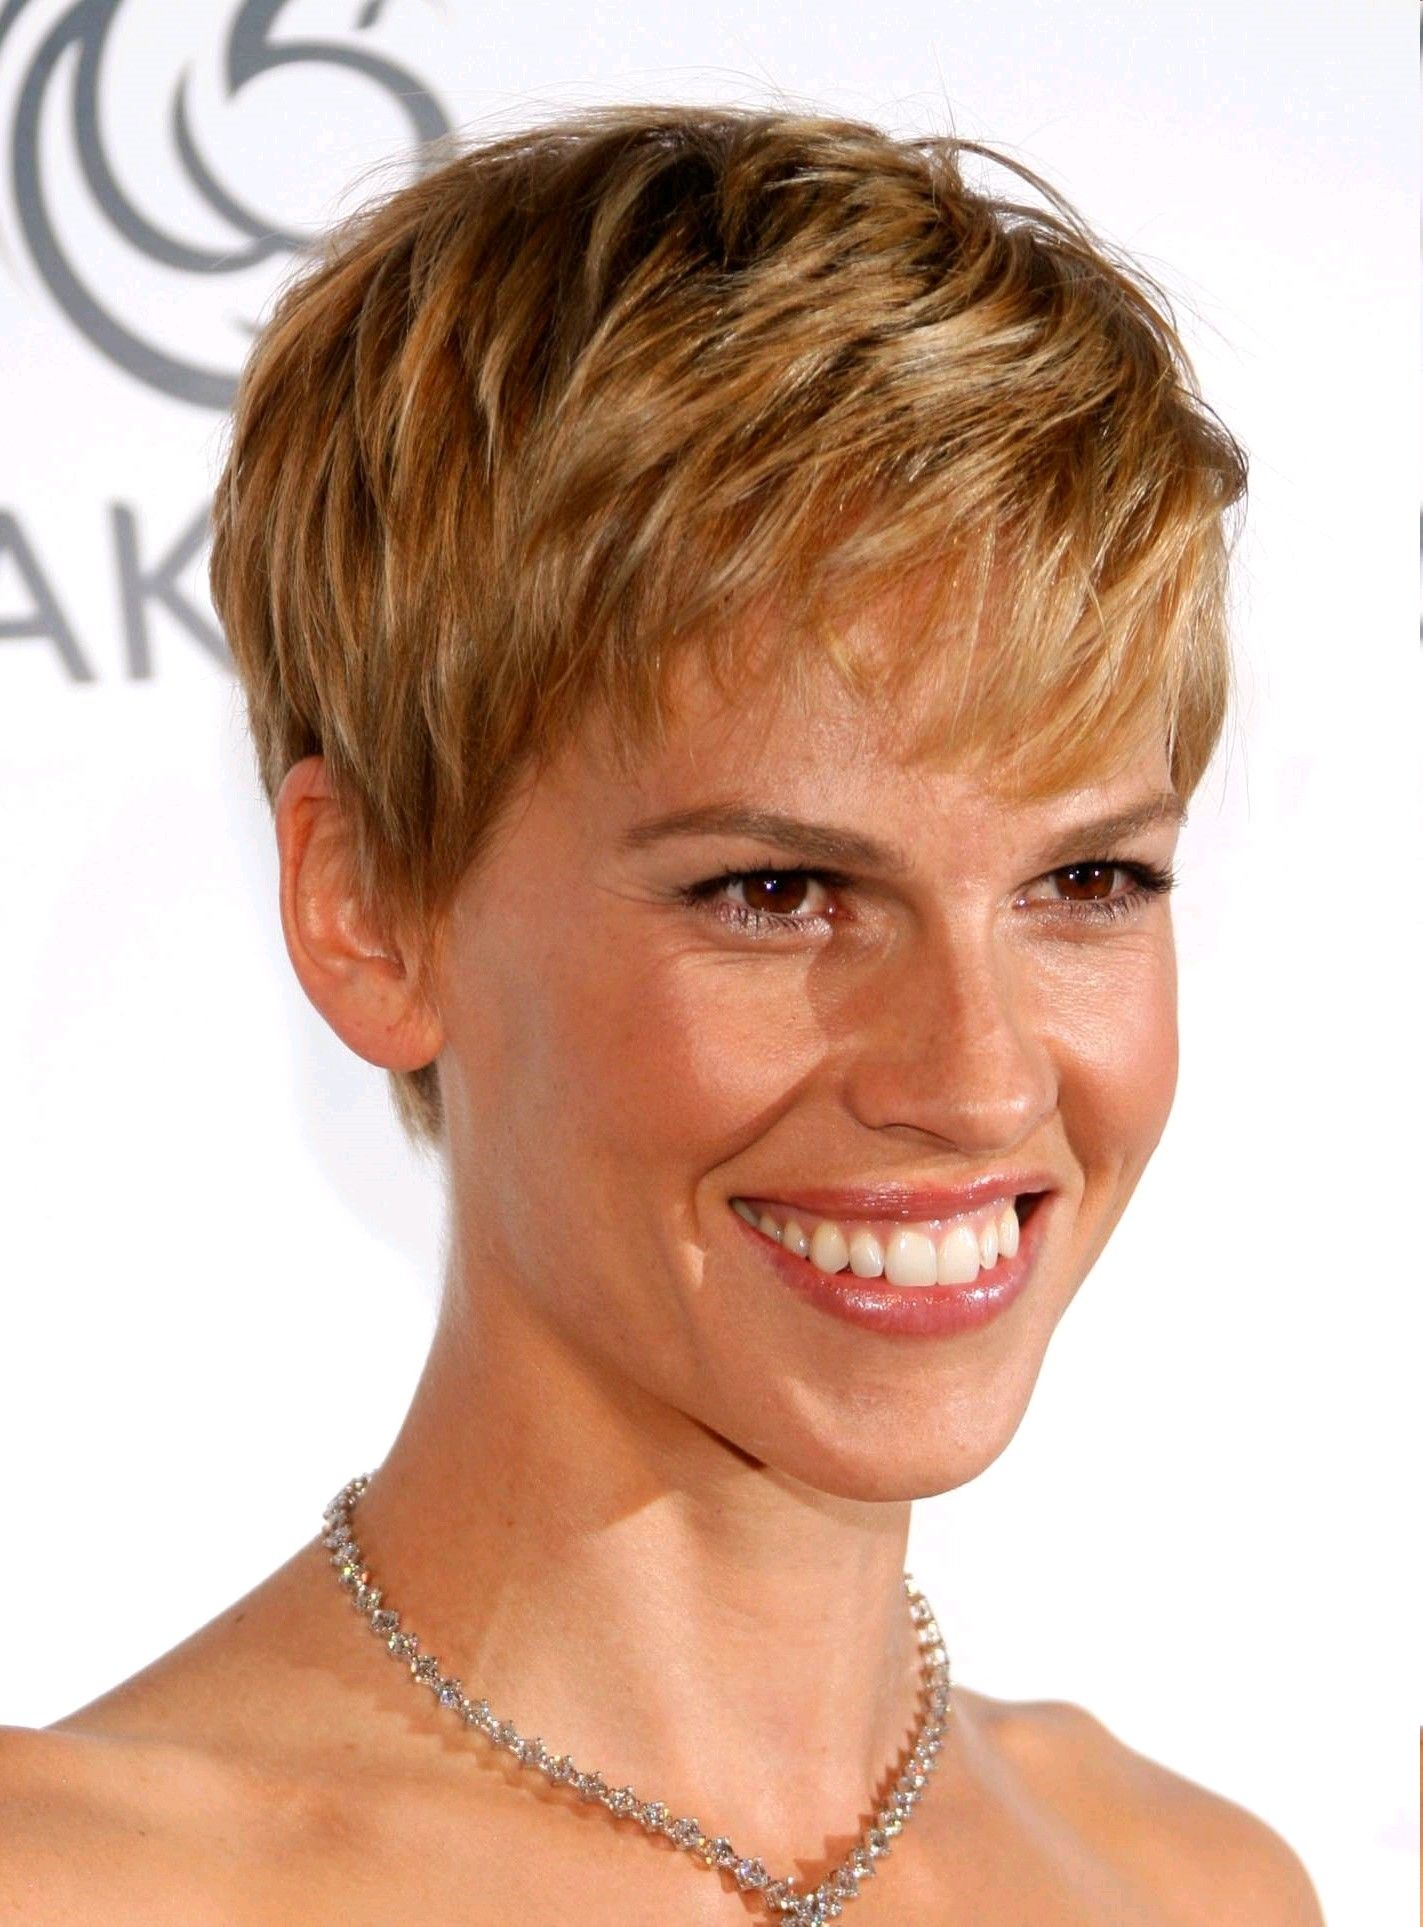 Short Hair Styles For Women Over 50 Celebrity Pixies Short